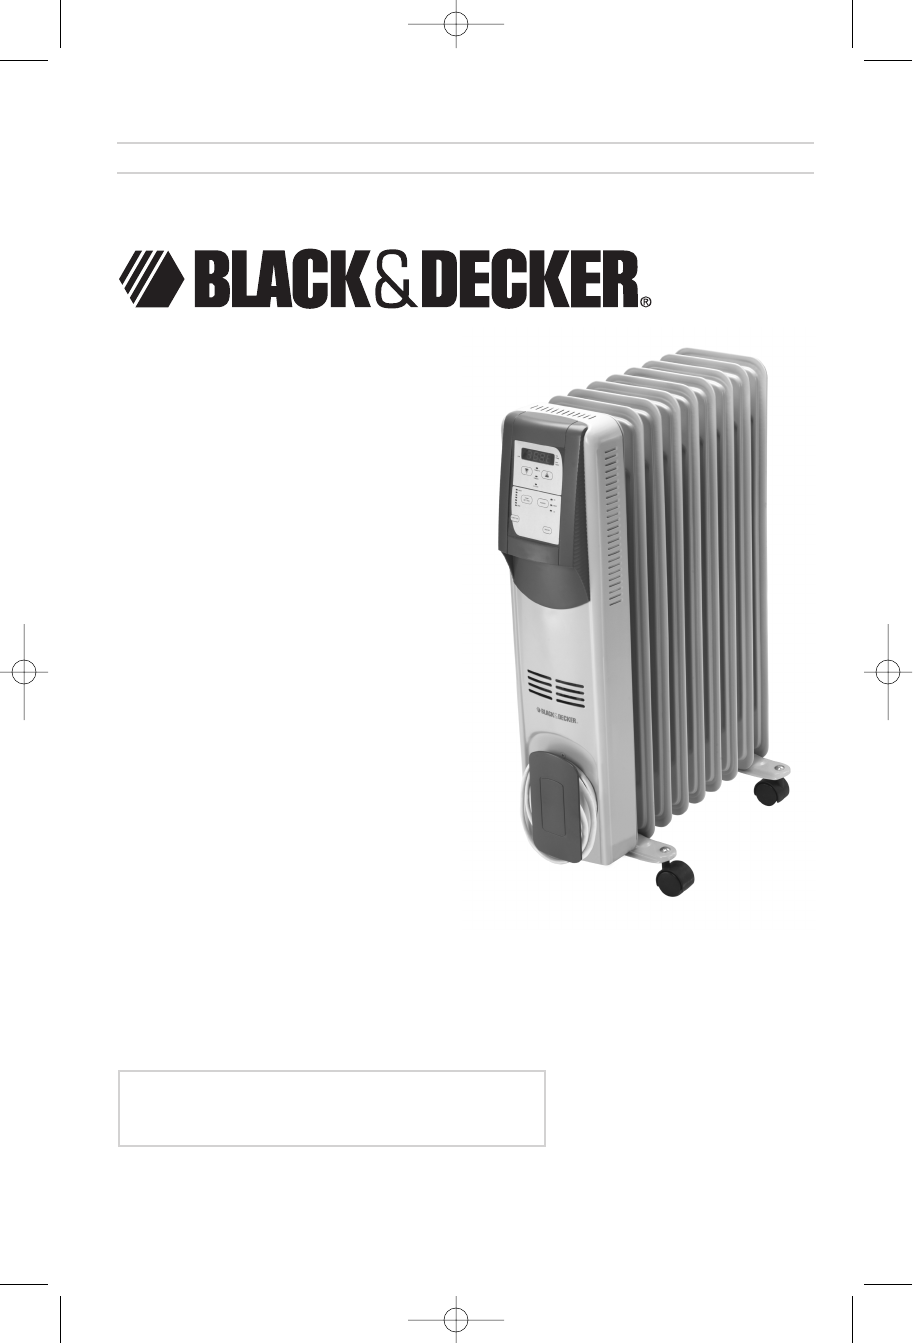 black & decker electric heater bdoh200 user guide | manualsonline